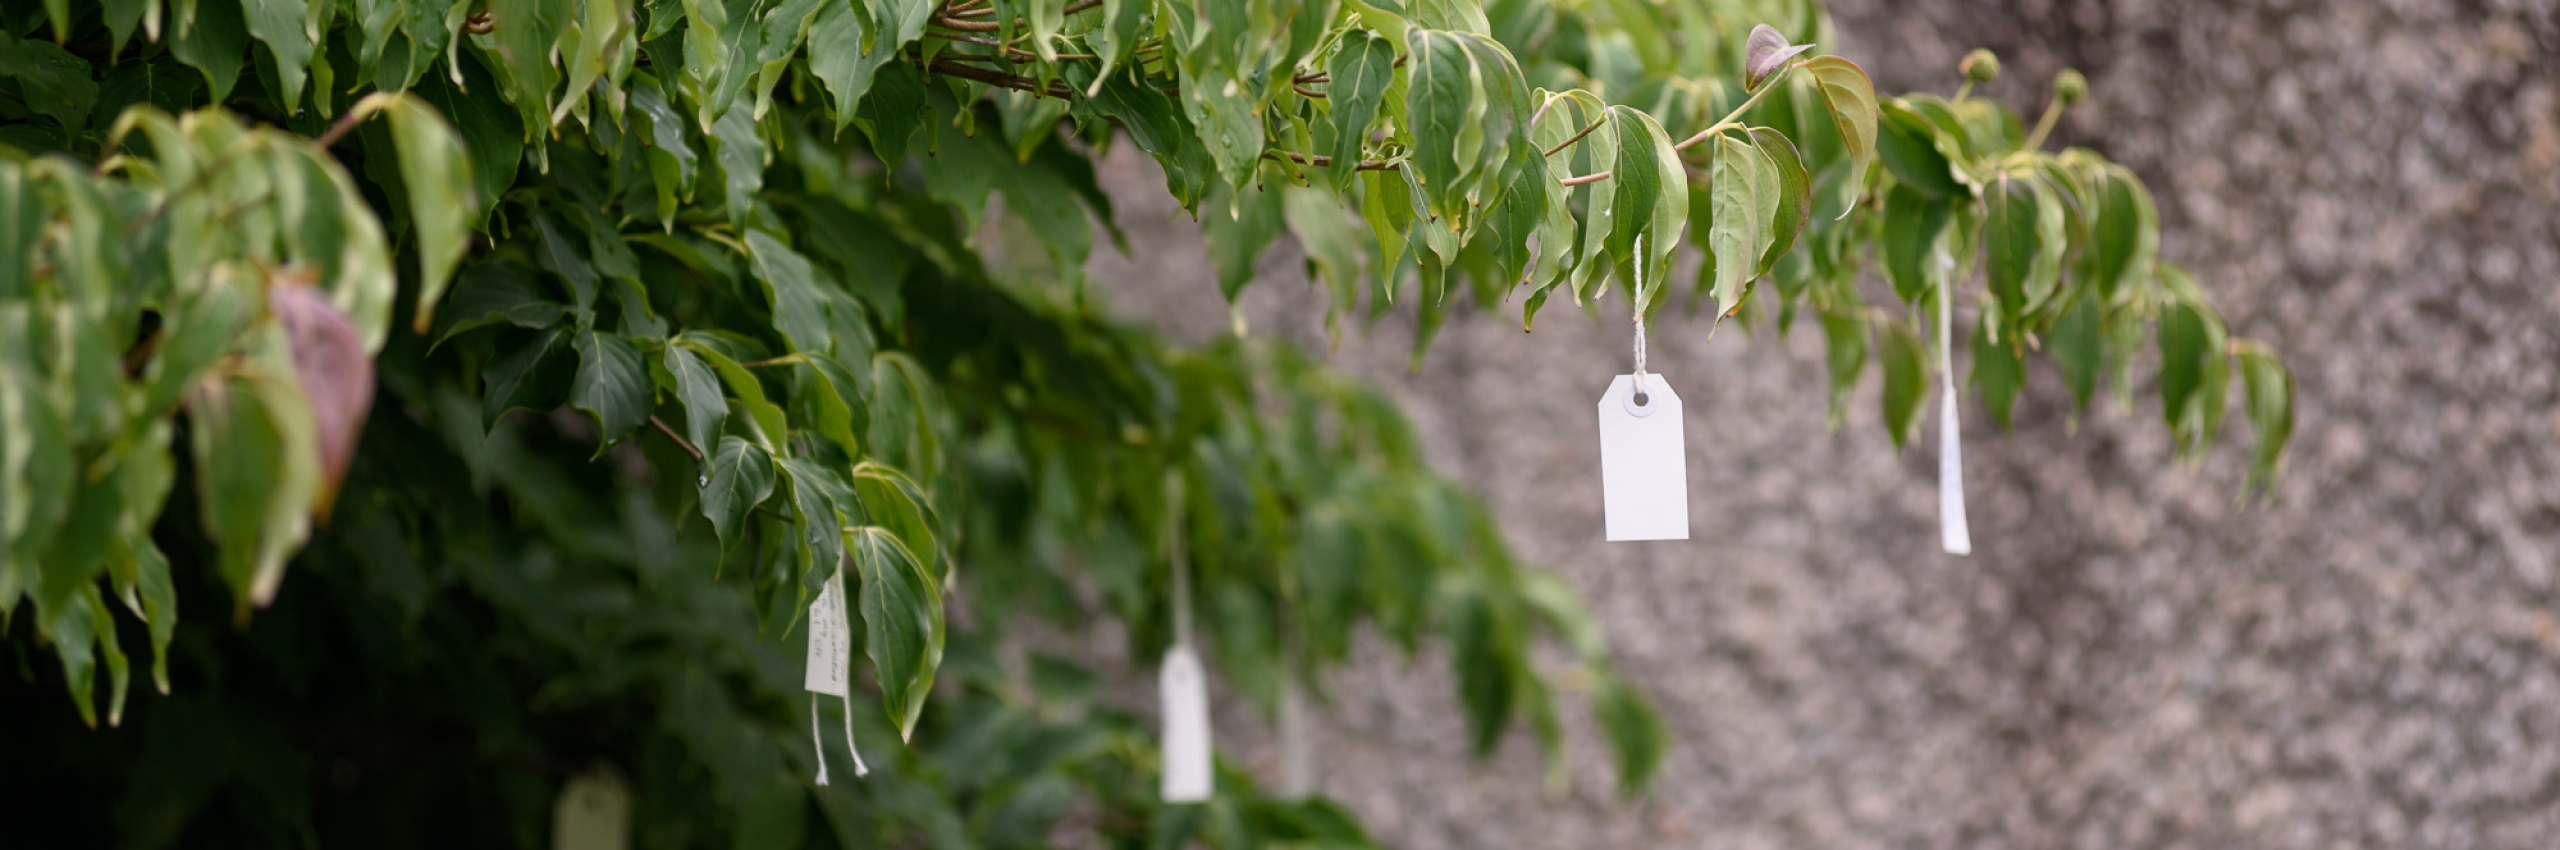 Yoko Ono's Wish Tree with white tags with wishes